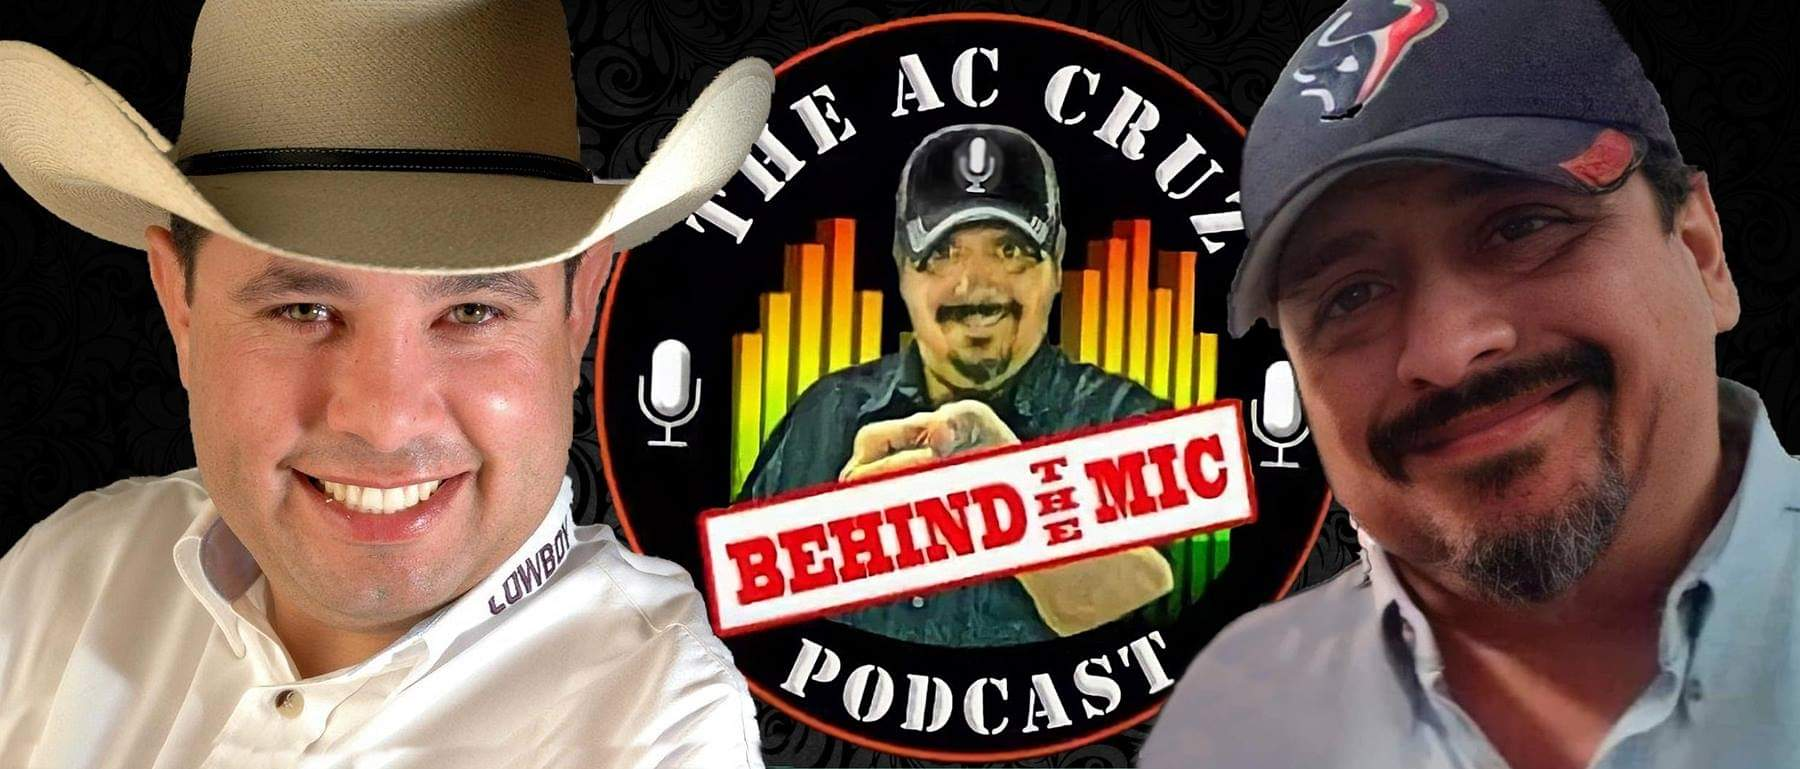 Behind The Mic with Jorge Moreno